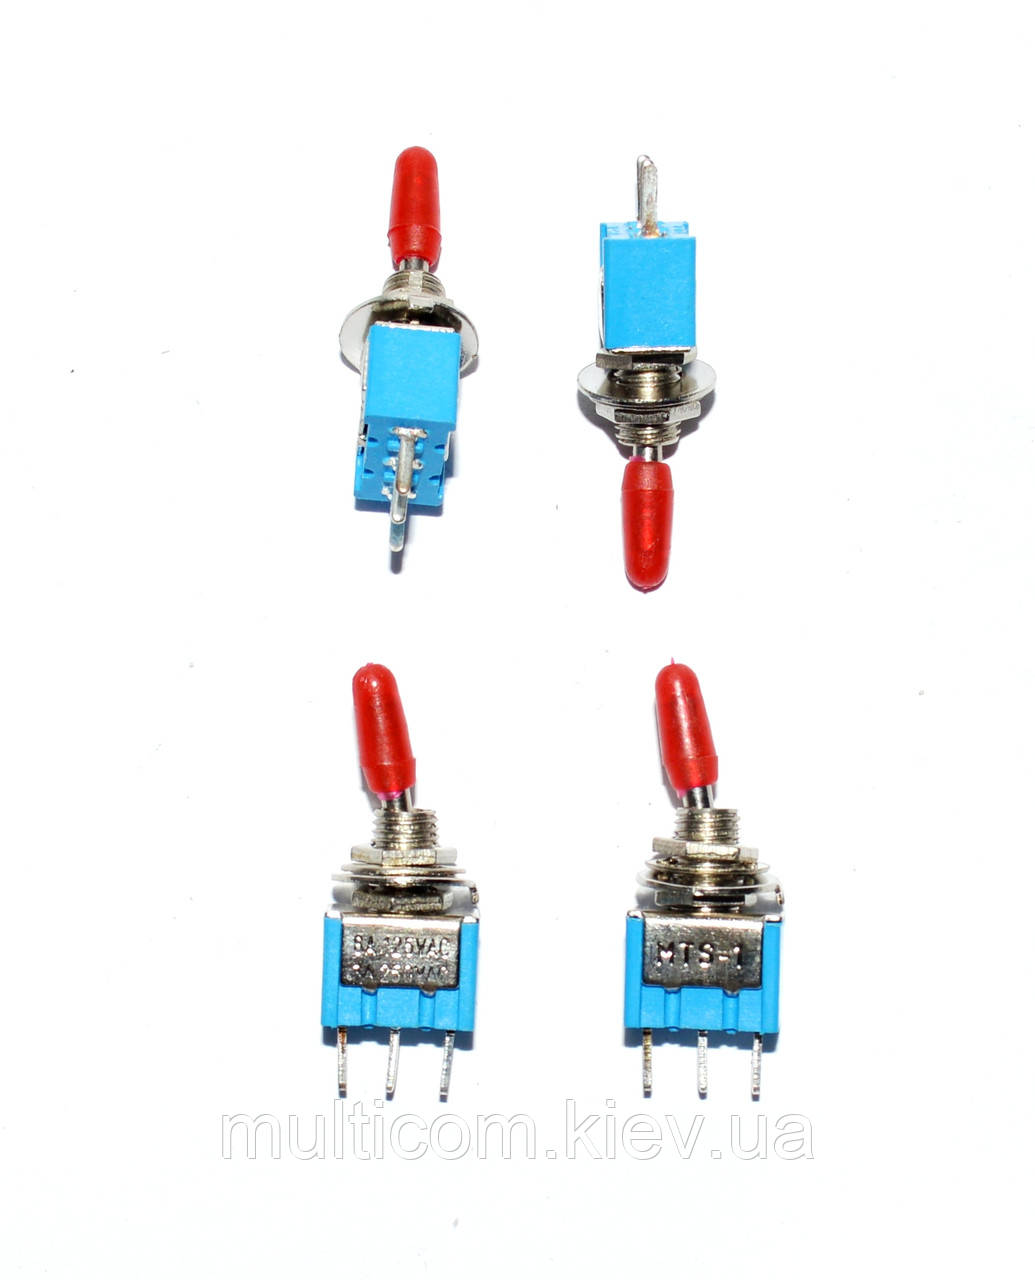 11-00-022. Тумблер MTS-102-A2 (ON-ON), 3pin, 3A 250VAC